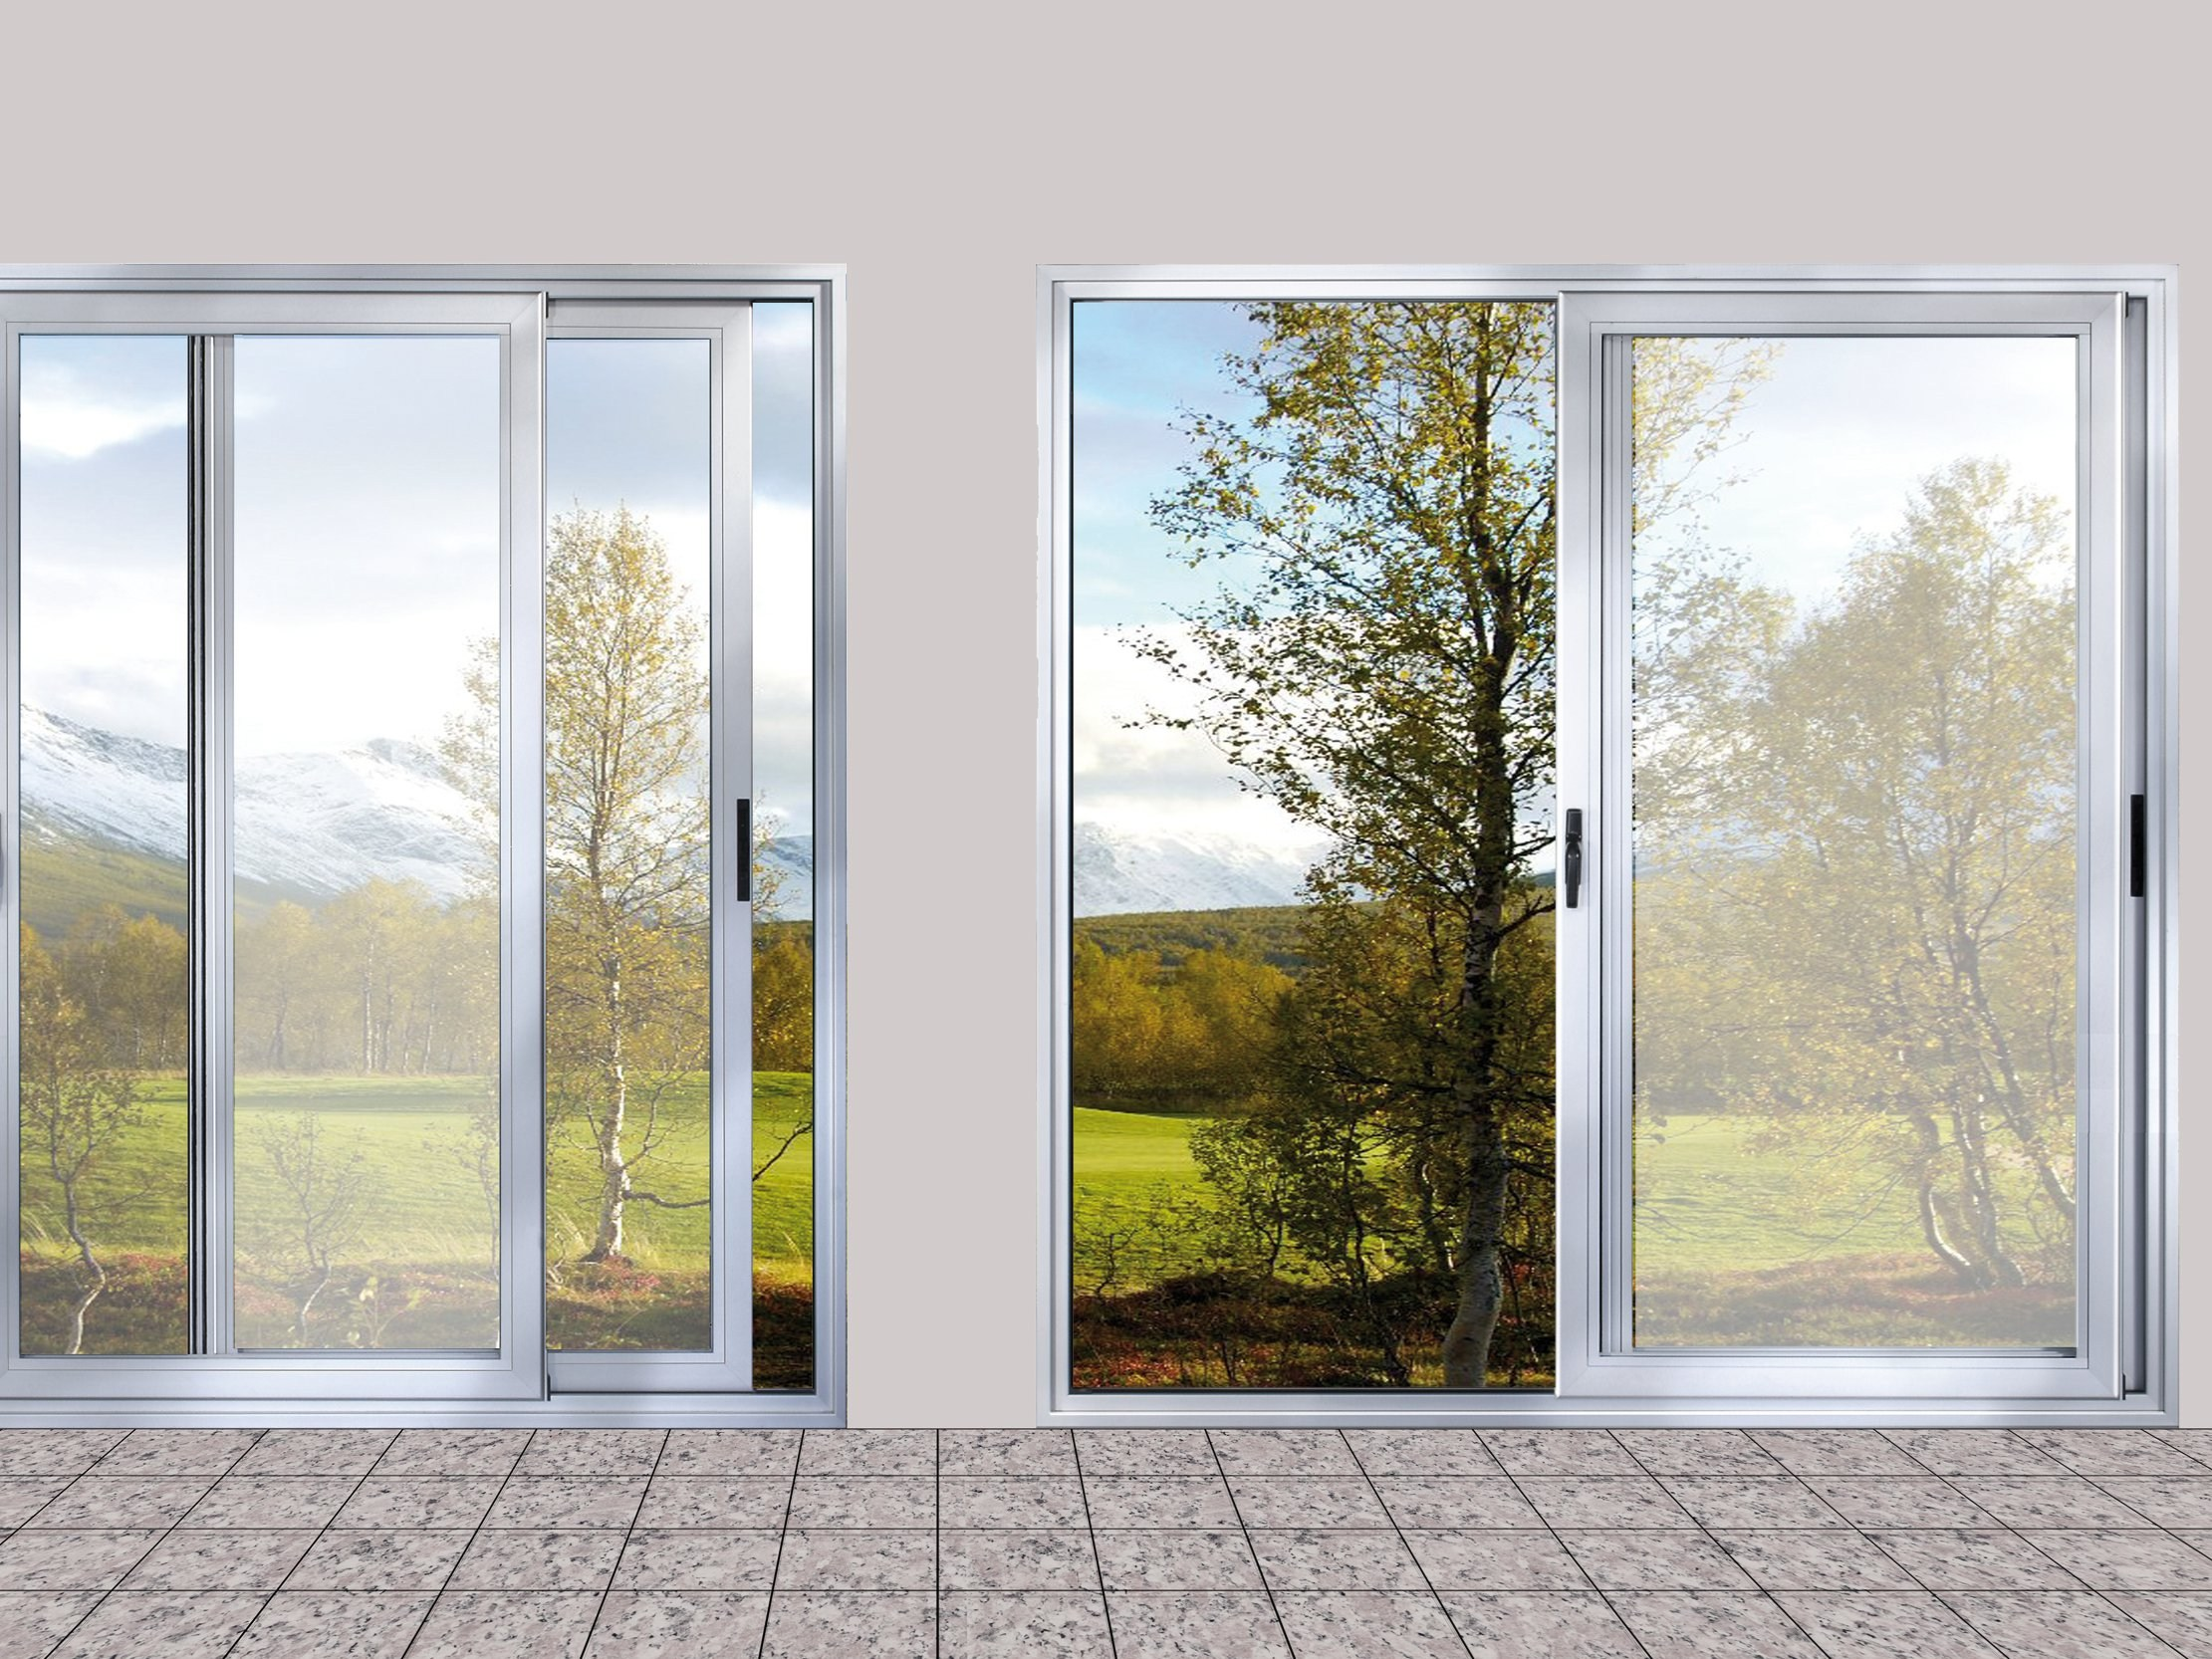 Aluminium sliding window eku 100 slide tt by profilati for Sliding glass windows